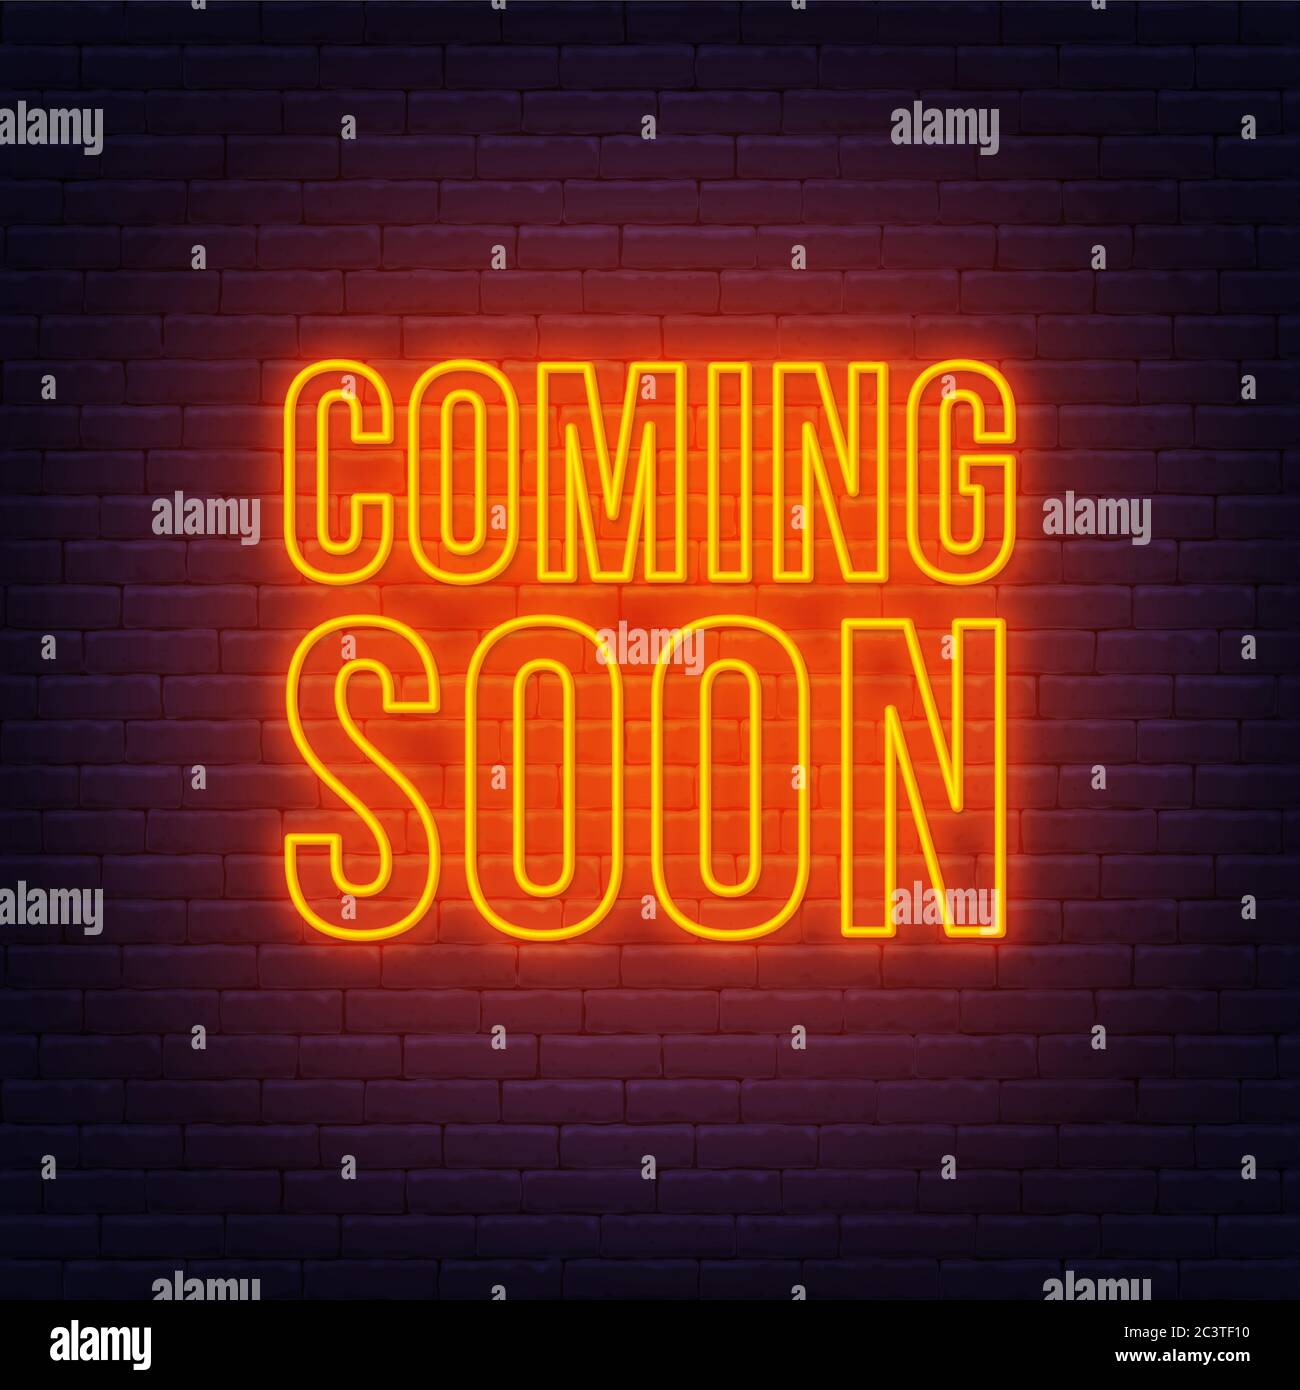 Coming Soon Neon Sign On A Brick Wall Background Stock Vector Image Art Alamy